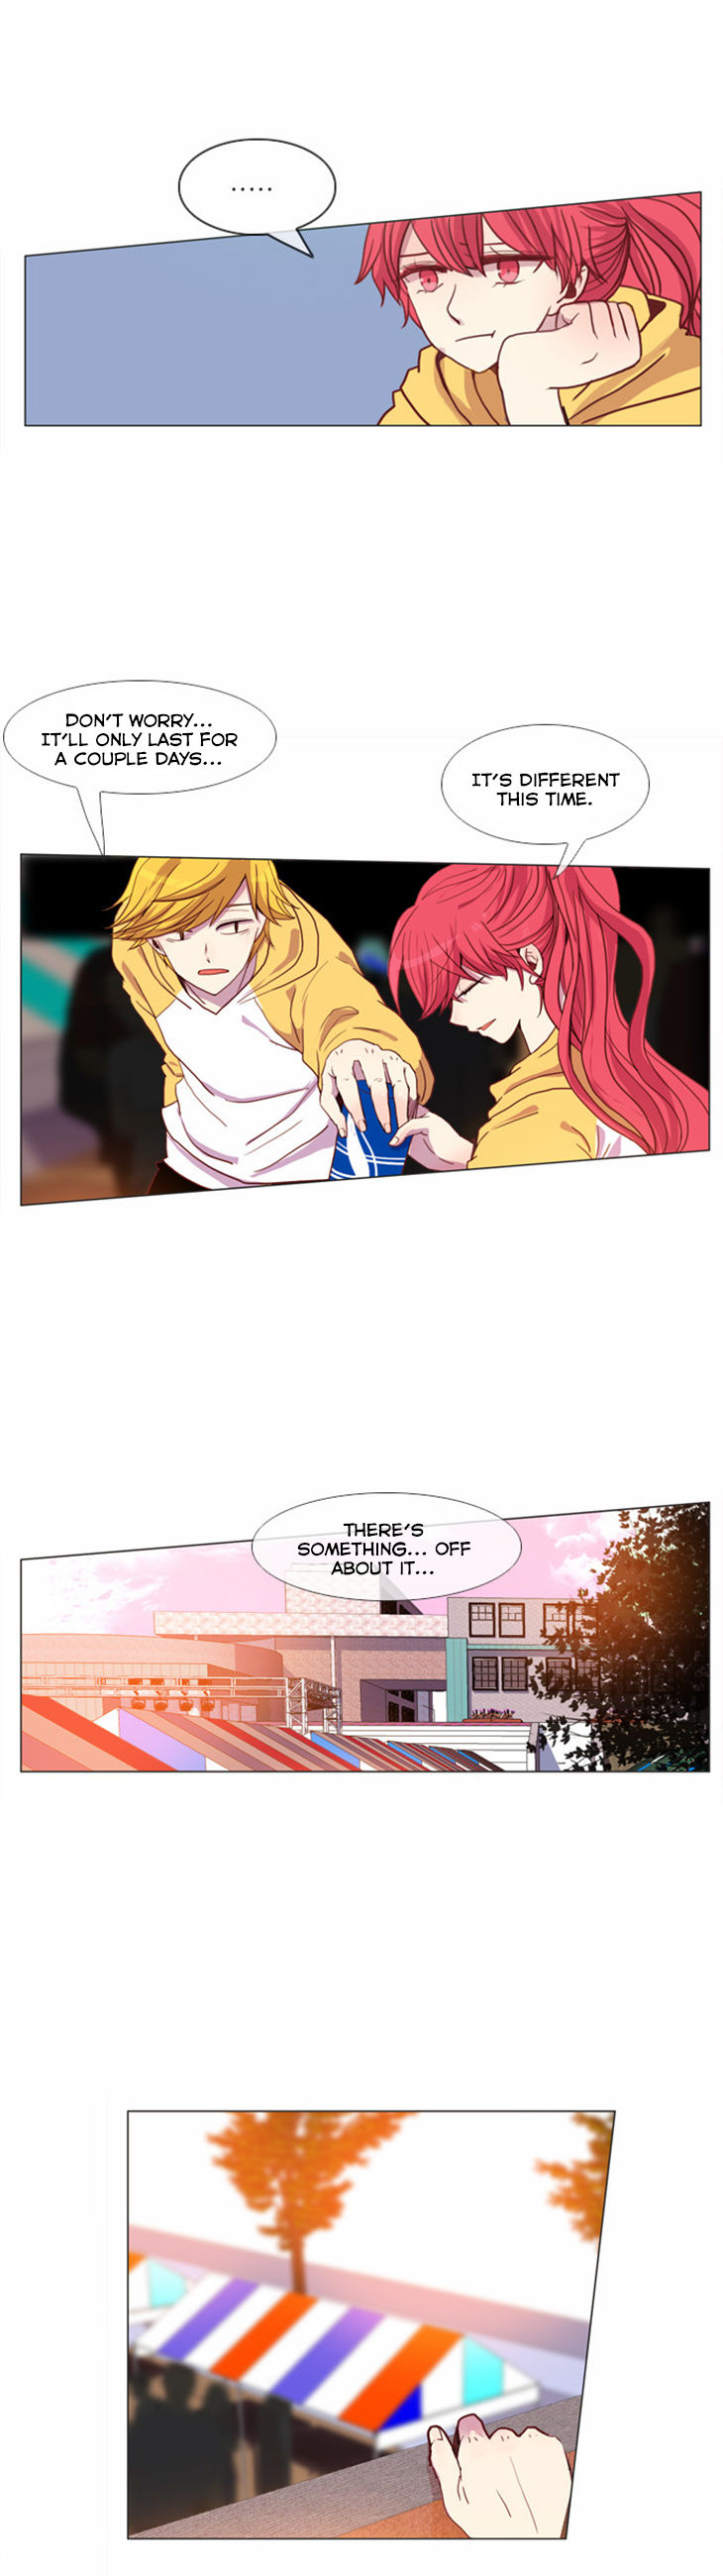 Flow 17 Page 1